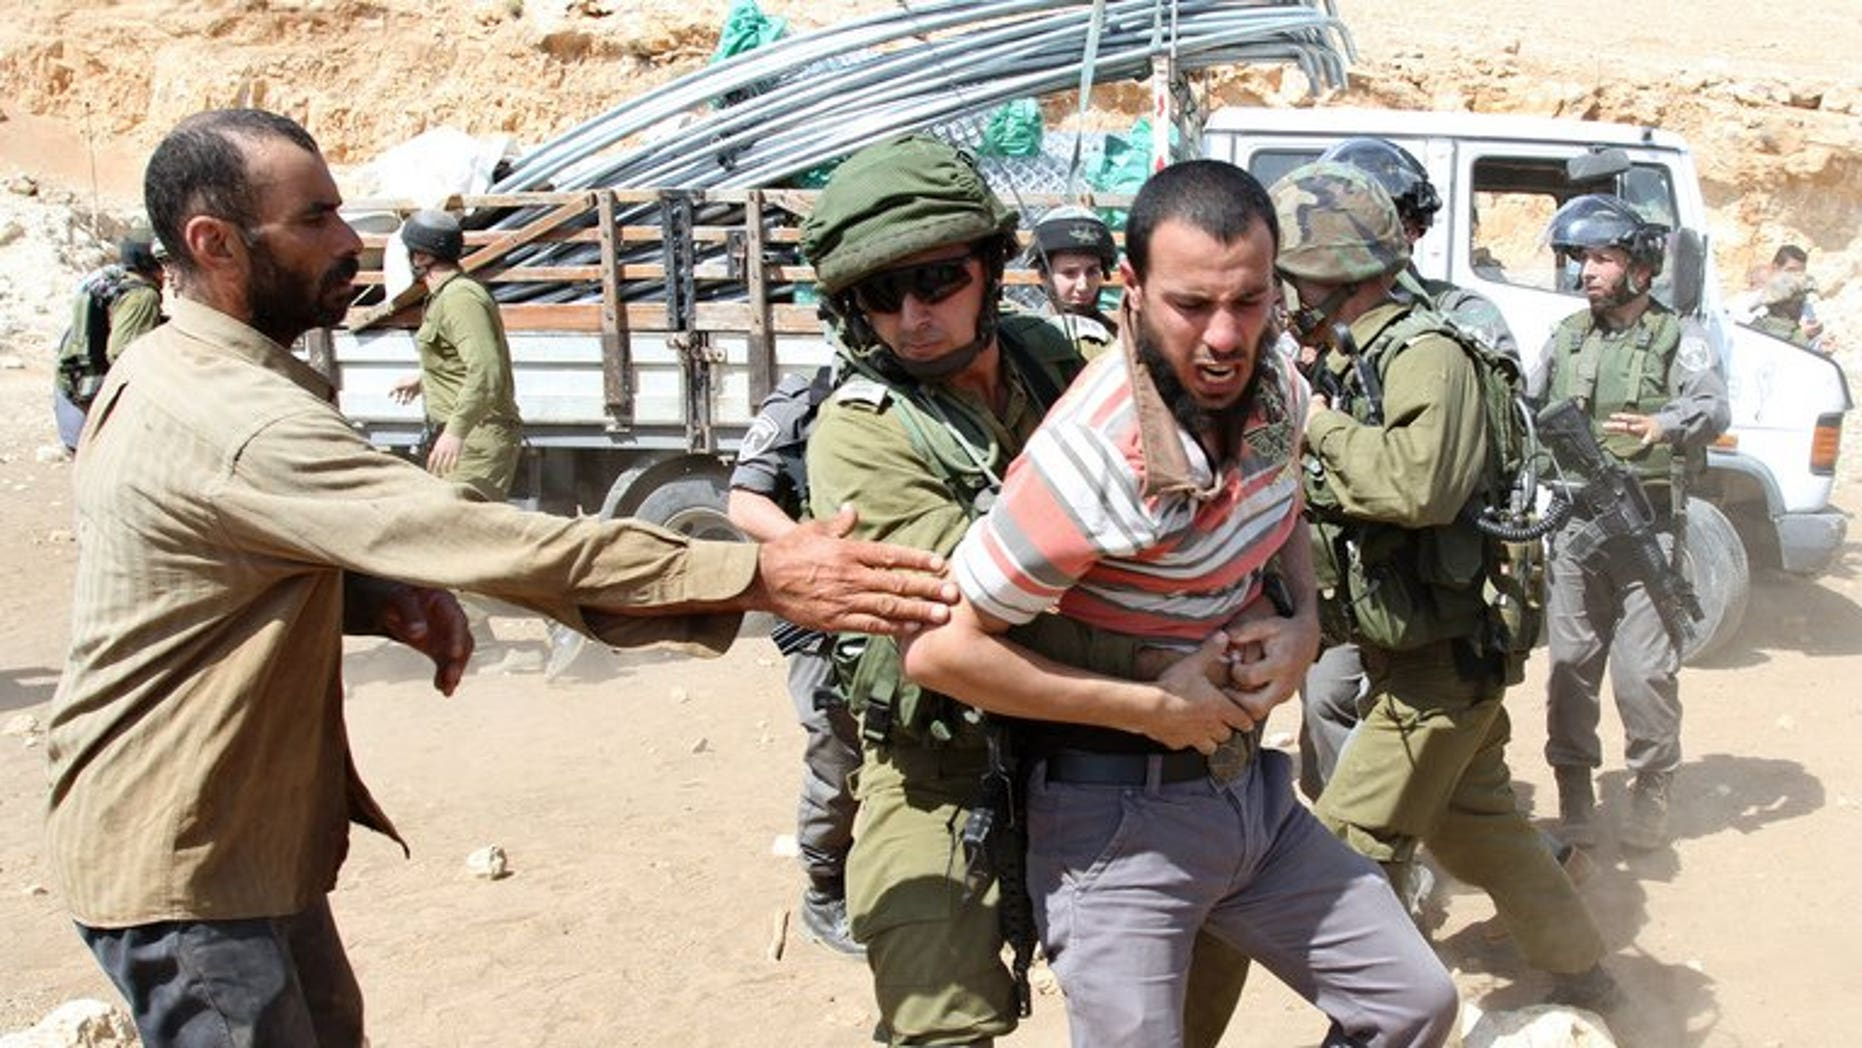 An Israeli soldier restrains a Palestinian man near a truck loaded with supplies on September 20, 2013 on a road leading to the West Bank village of Khirbet al-Makhul.